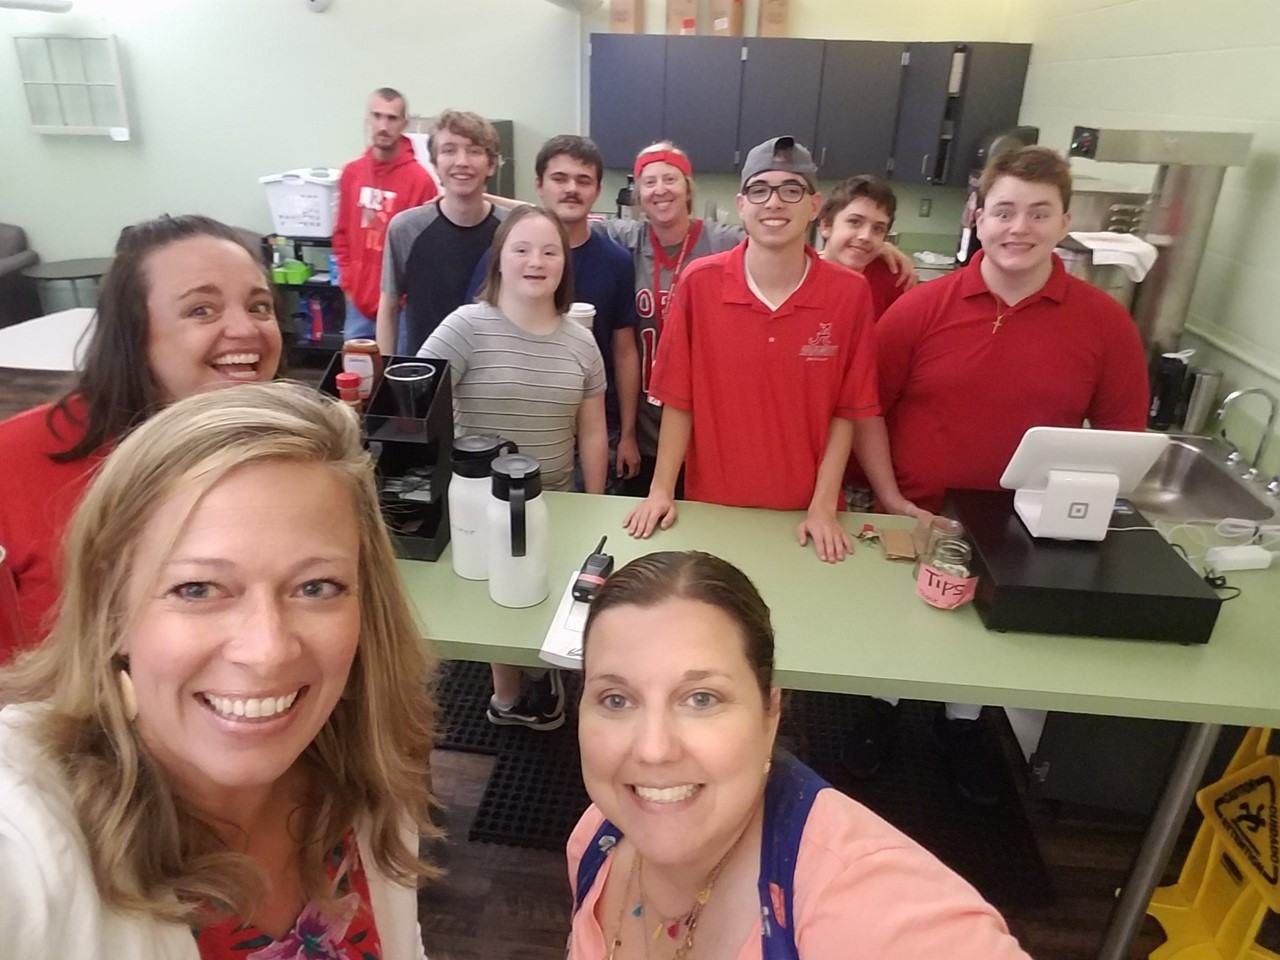 Lopes Lounge -Opening Day...students working in the Lopes Lounge and serving coffee.  All people (6 students, 2 teachers and HS Principal) in the photo are smiling in a selfie.